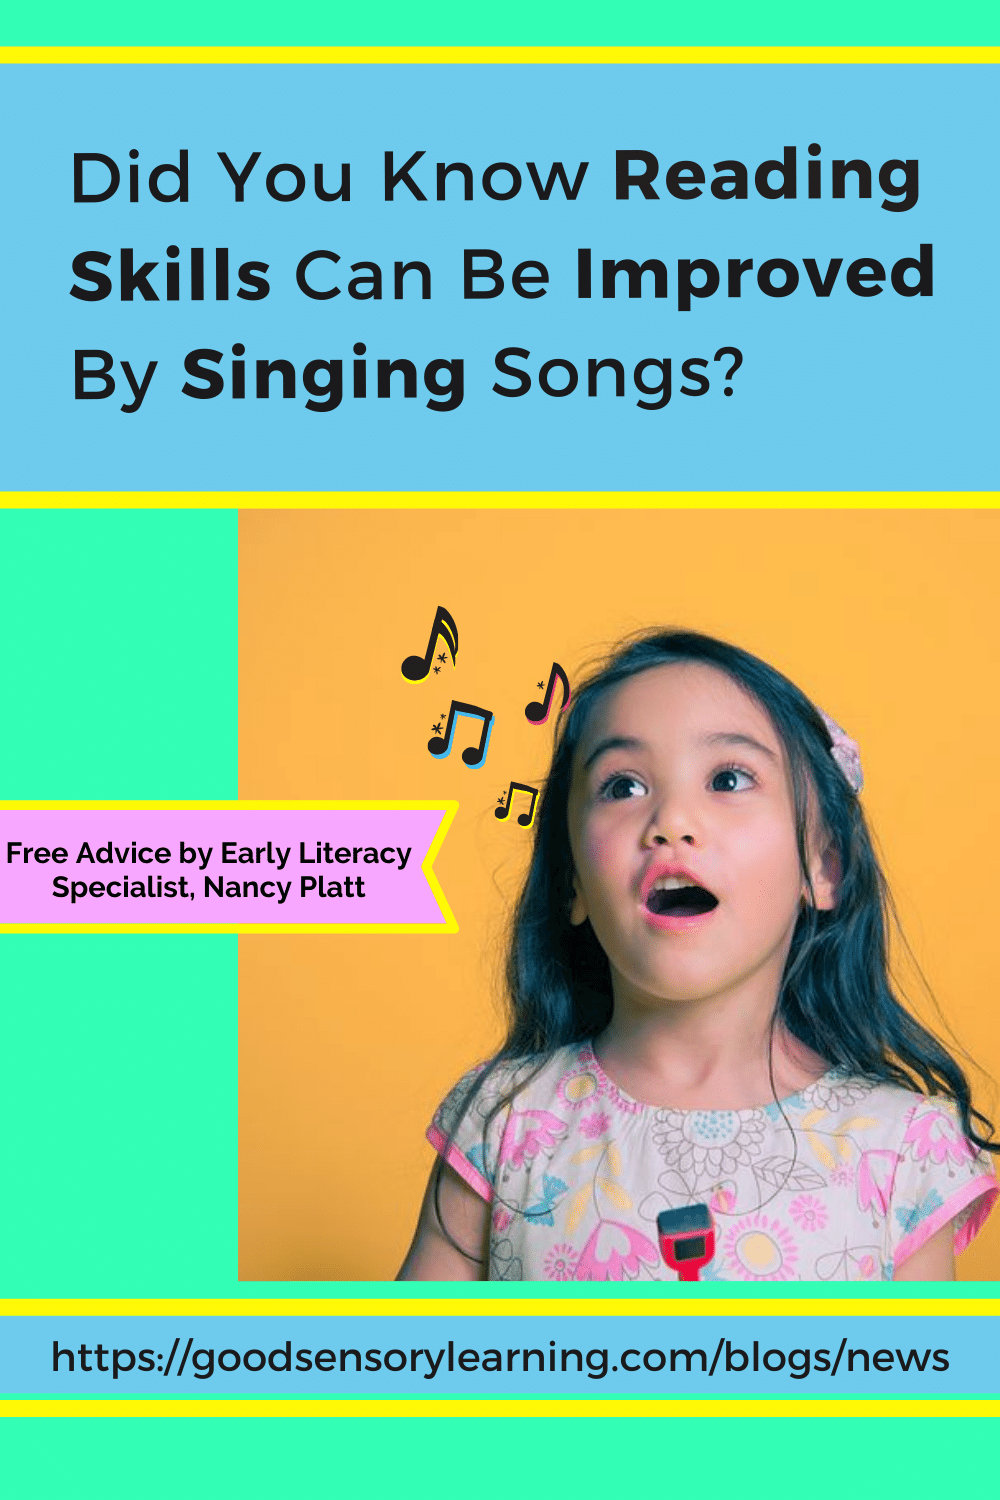 singing songs can improve reading